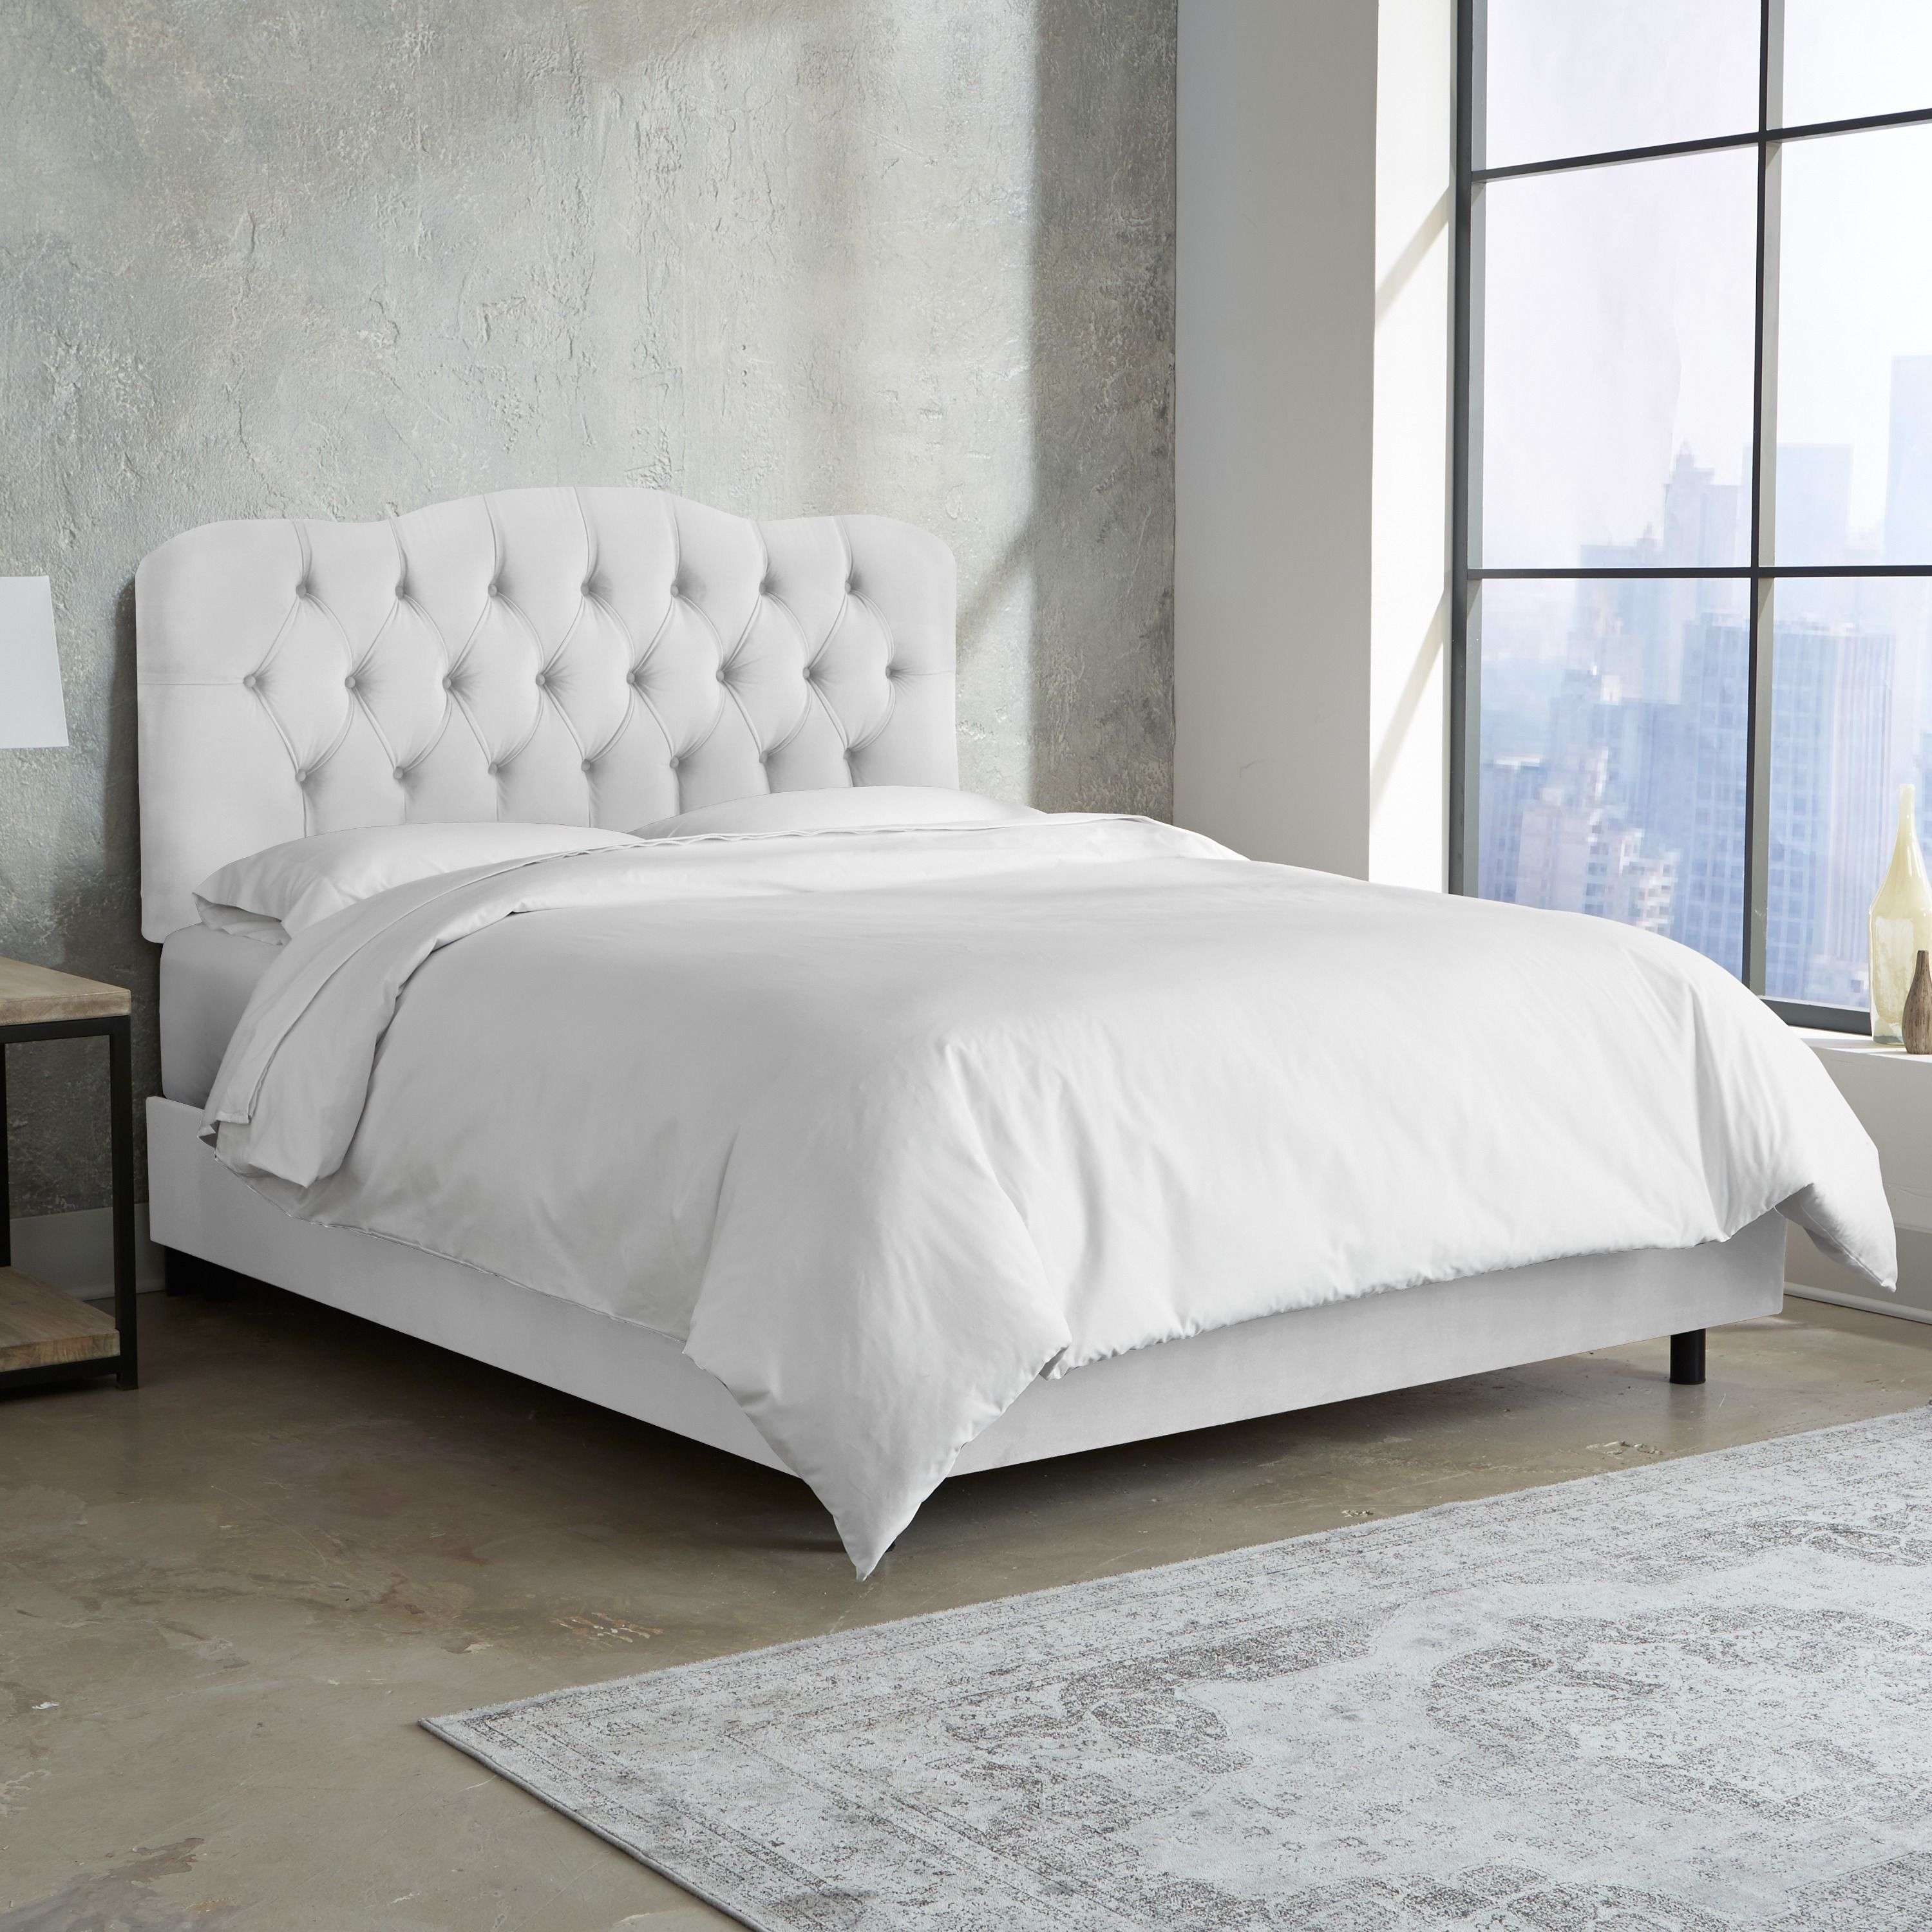 Skyline Furniture Tufted Bed In Velvet White Twin In